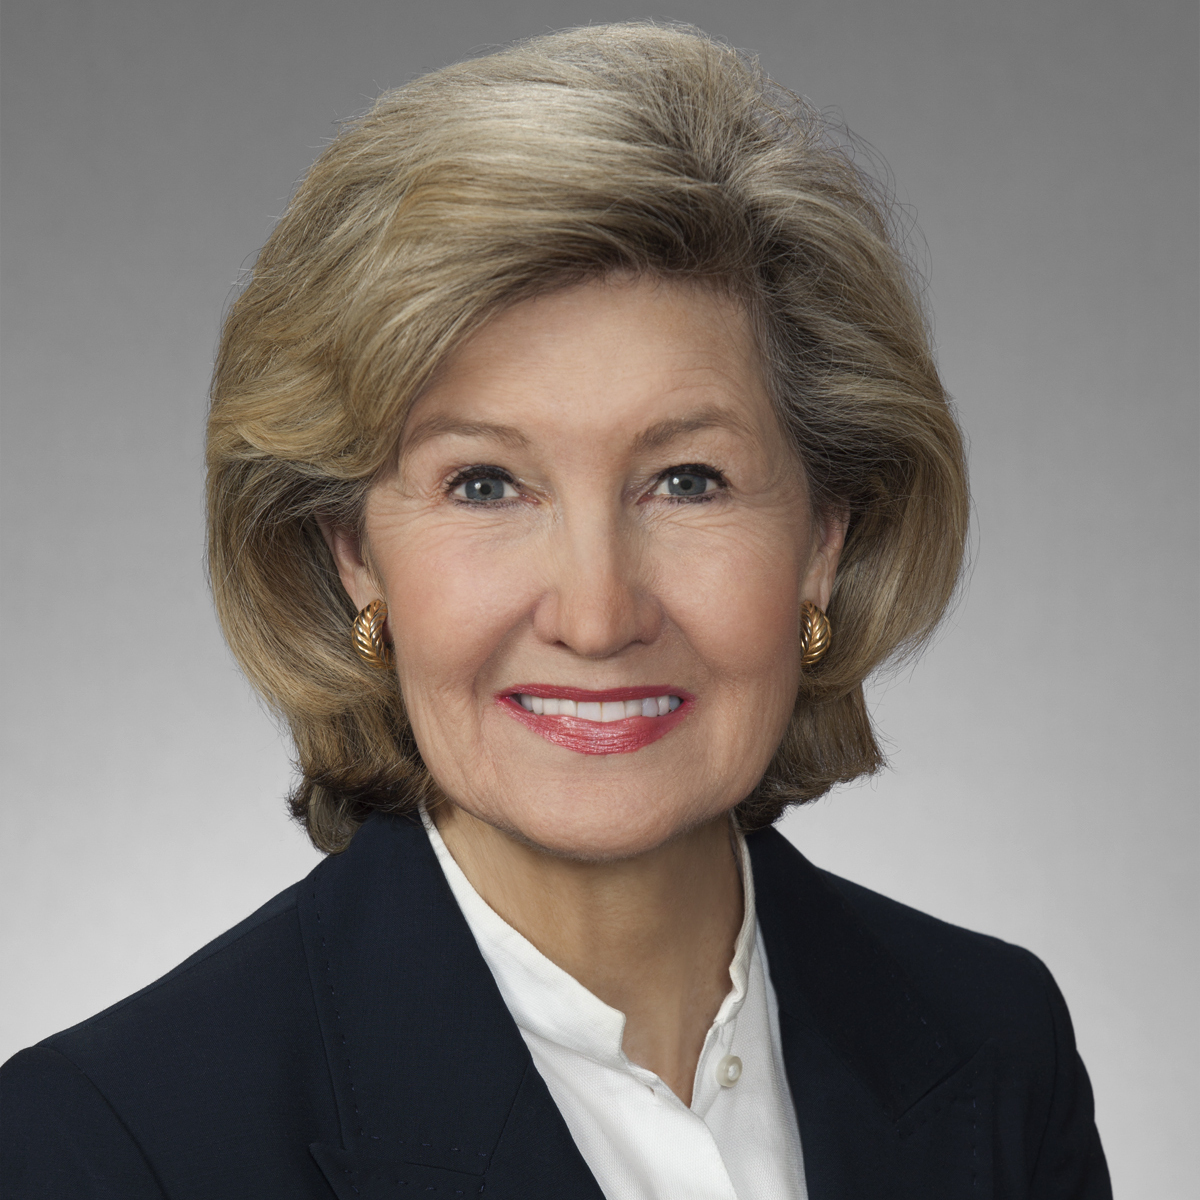 Kay Bailey Hutchison was the first woman elected to represent Texas in the United States Senate, serving from 1993 to 2013. She lives in Dallas with her family.